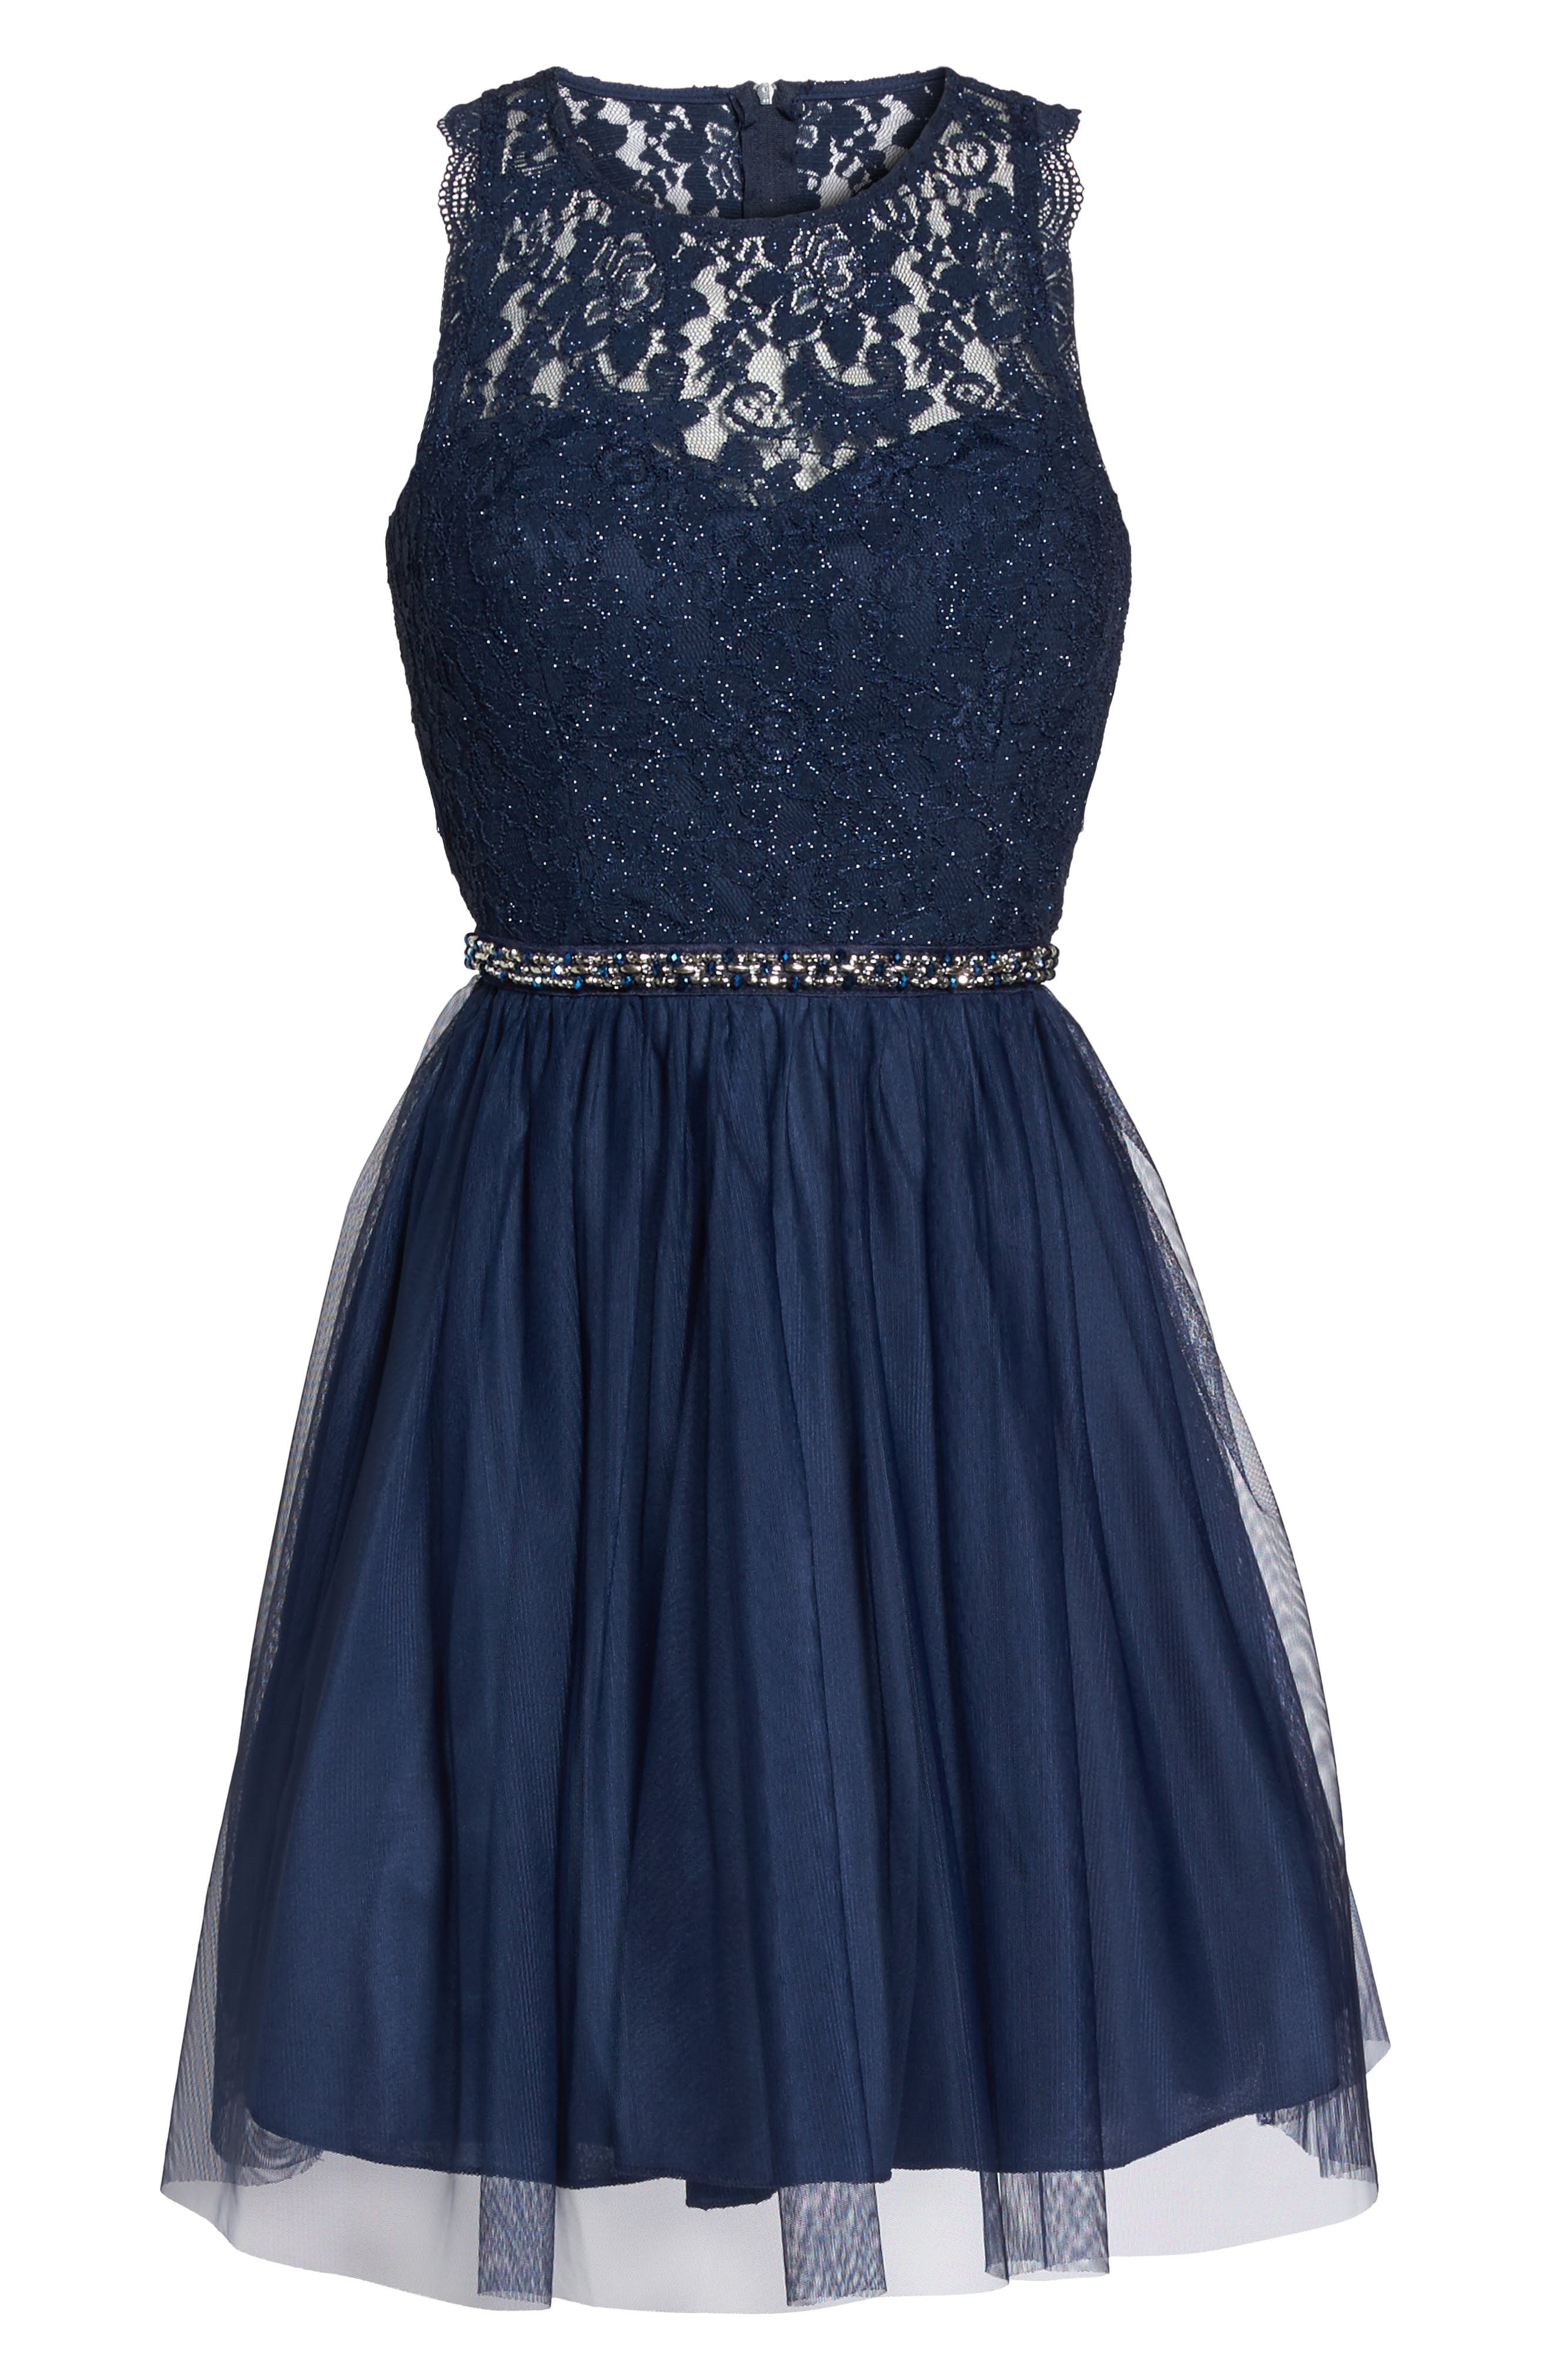 Glitter Lace Fit & Flare Dress,                             Alternate thumbnail 6, color,                             Navy